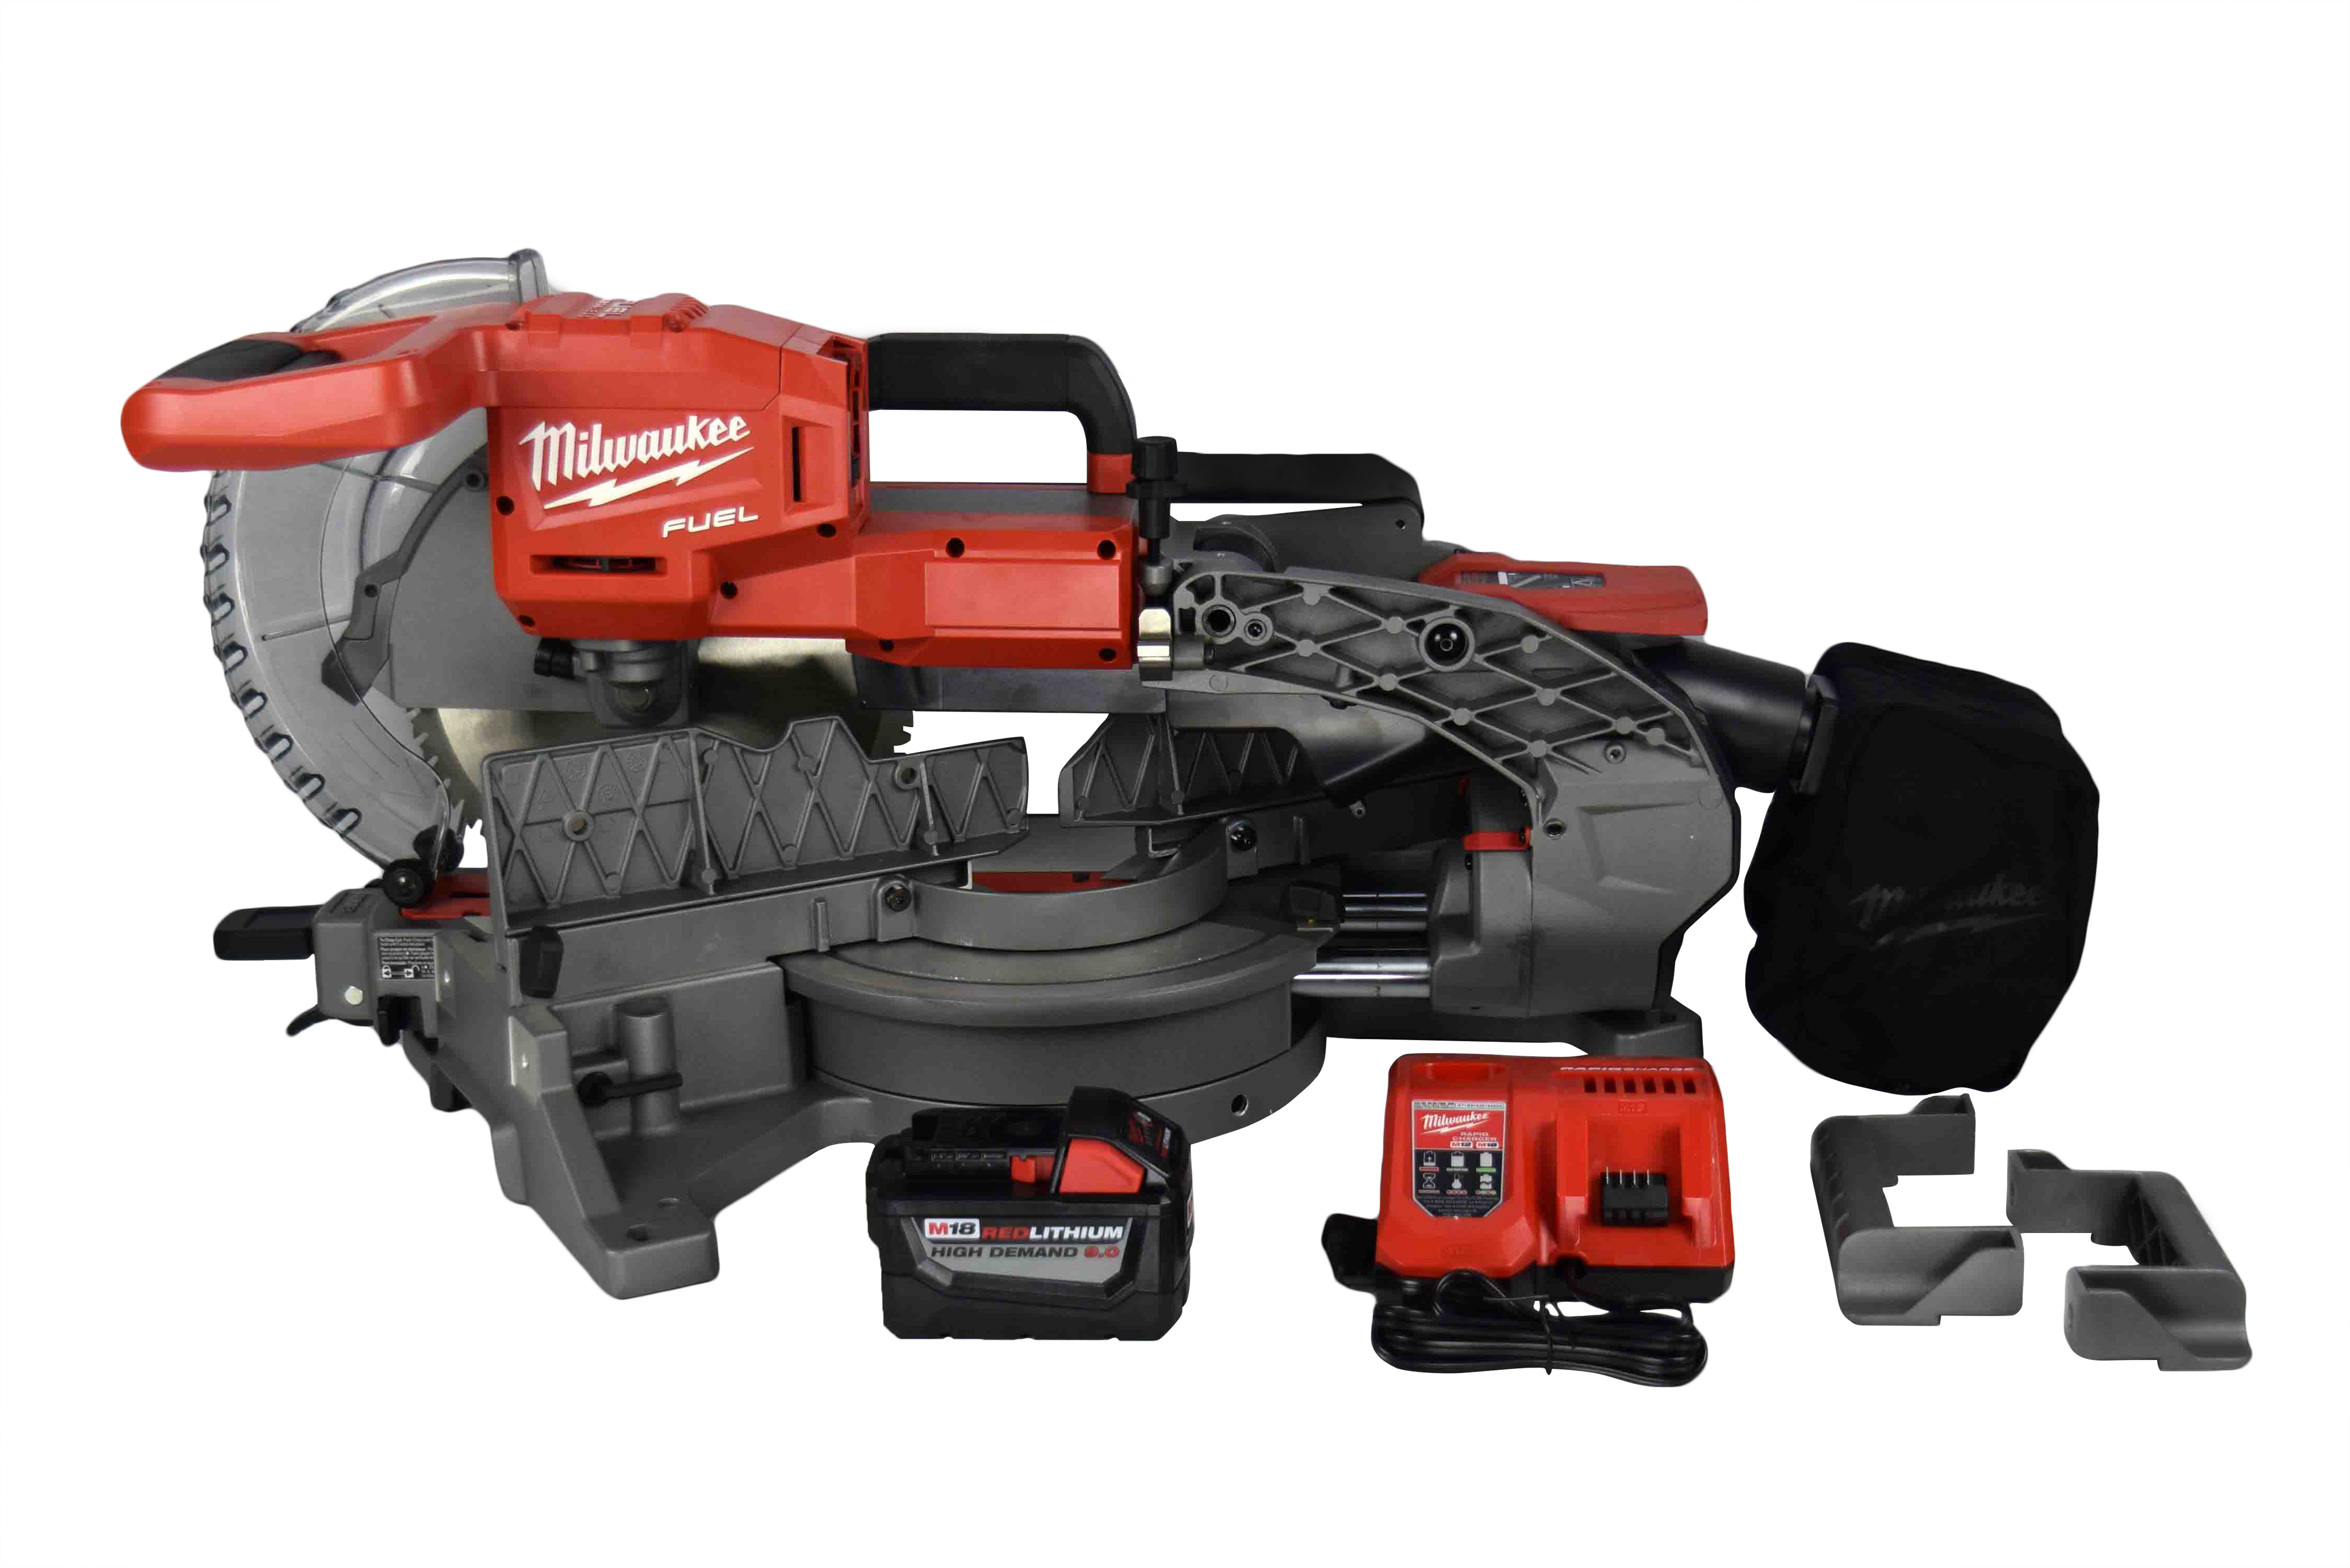 Milwaukee 2734-21HDP Cordless FUEL 18V Dual-Bevel Sliding Compound Miter Saw Kit by Milwaukee